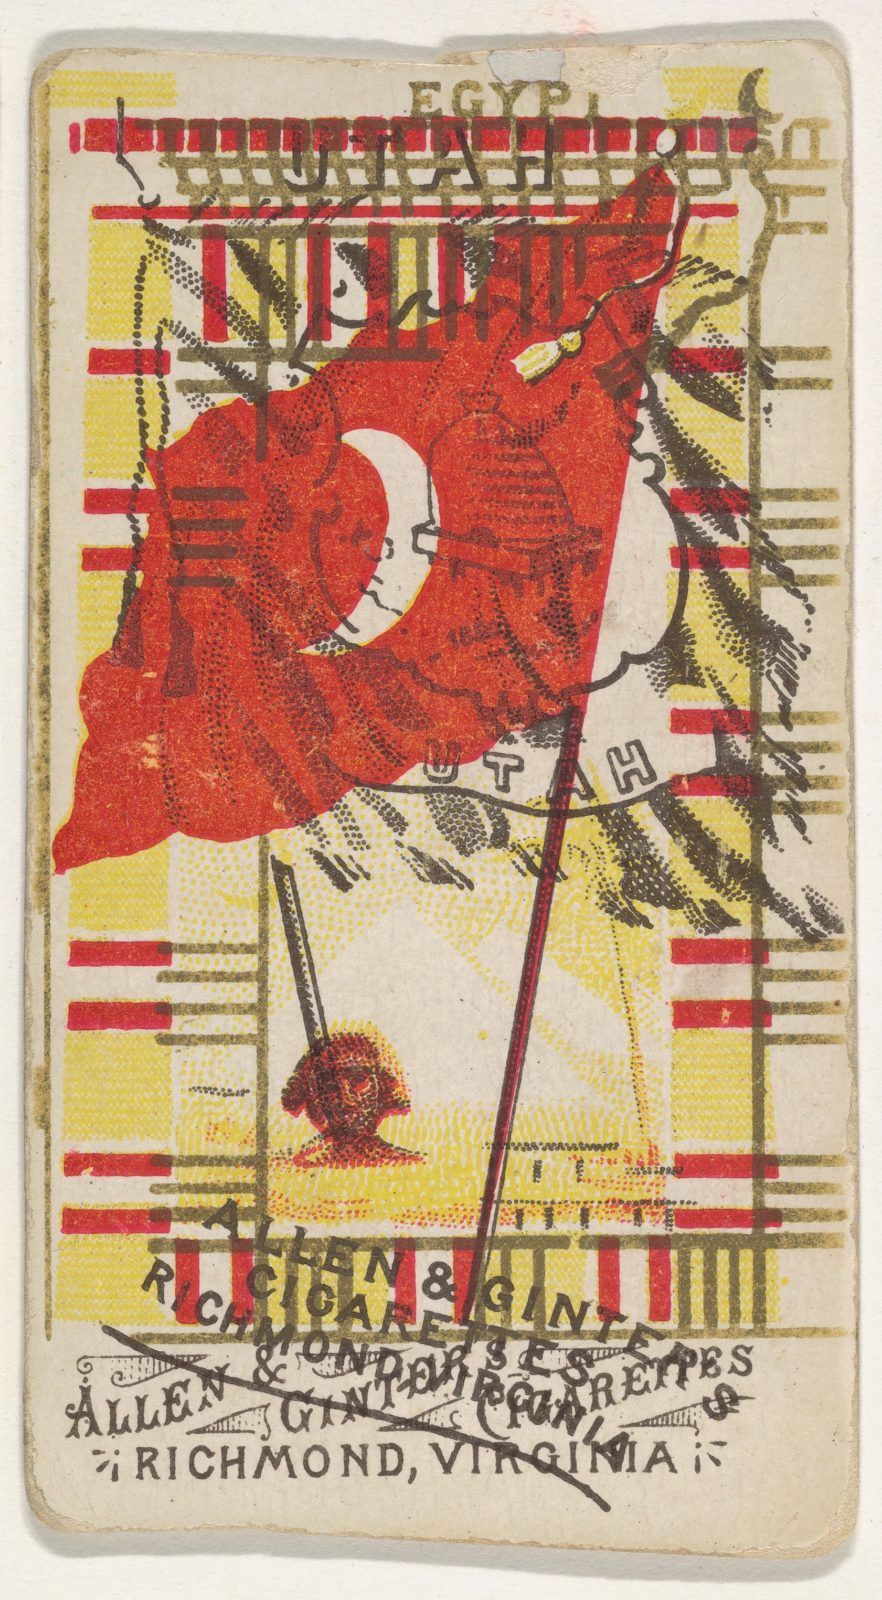 Egypt and Utah (double-printed card), from Flags of All Nations, Series 1 (N9) for Allen & Ginter Cigarettes Brands